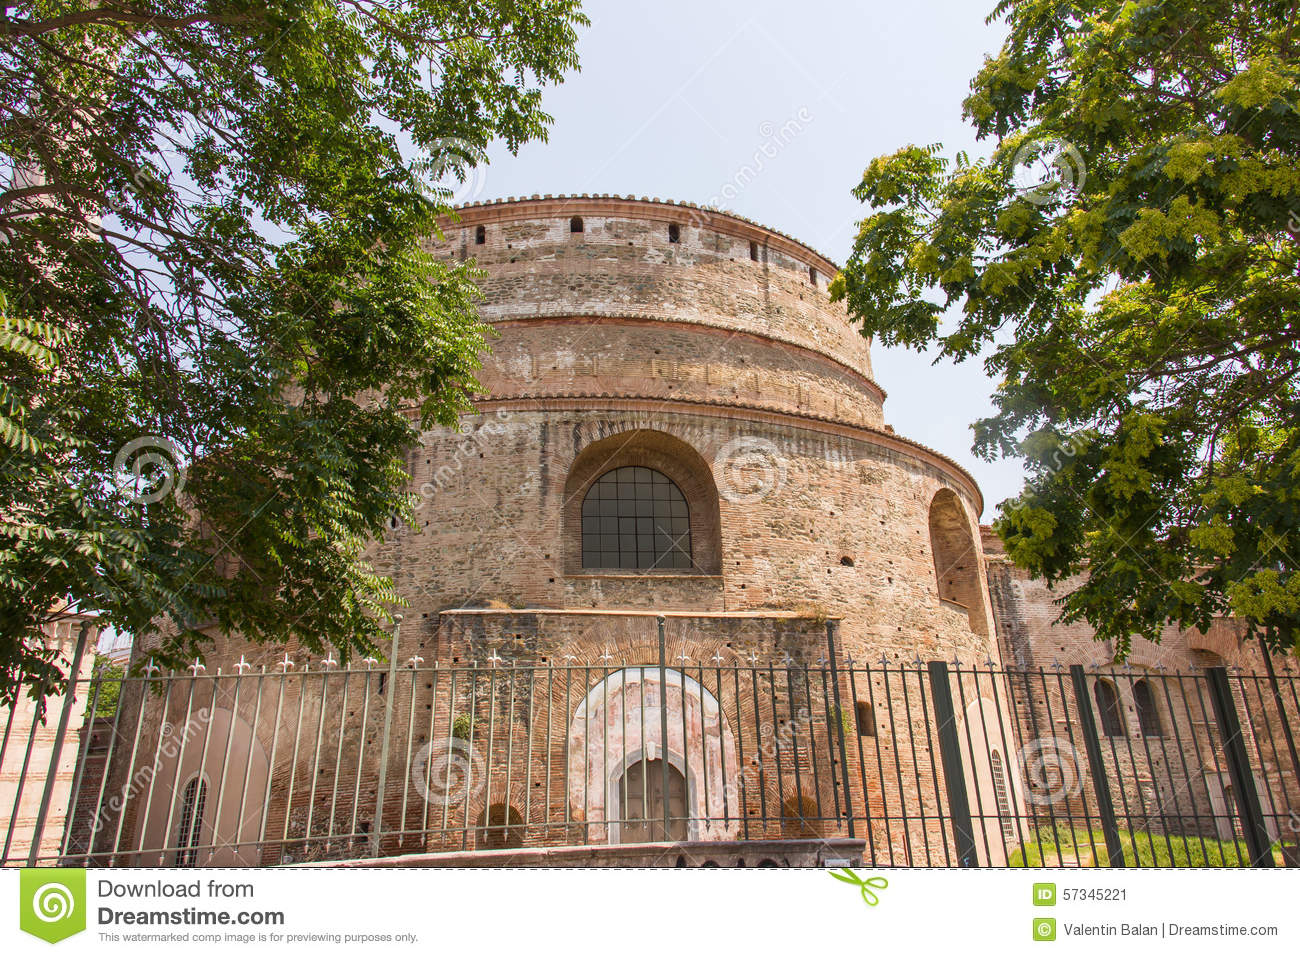 The rotunda is a temple, mausoleum or arbor 88